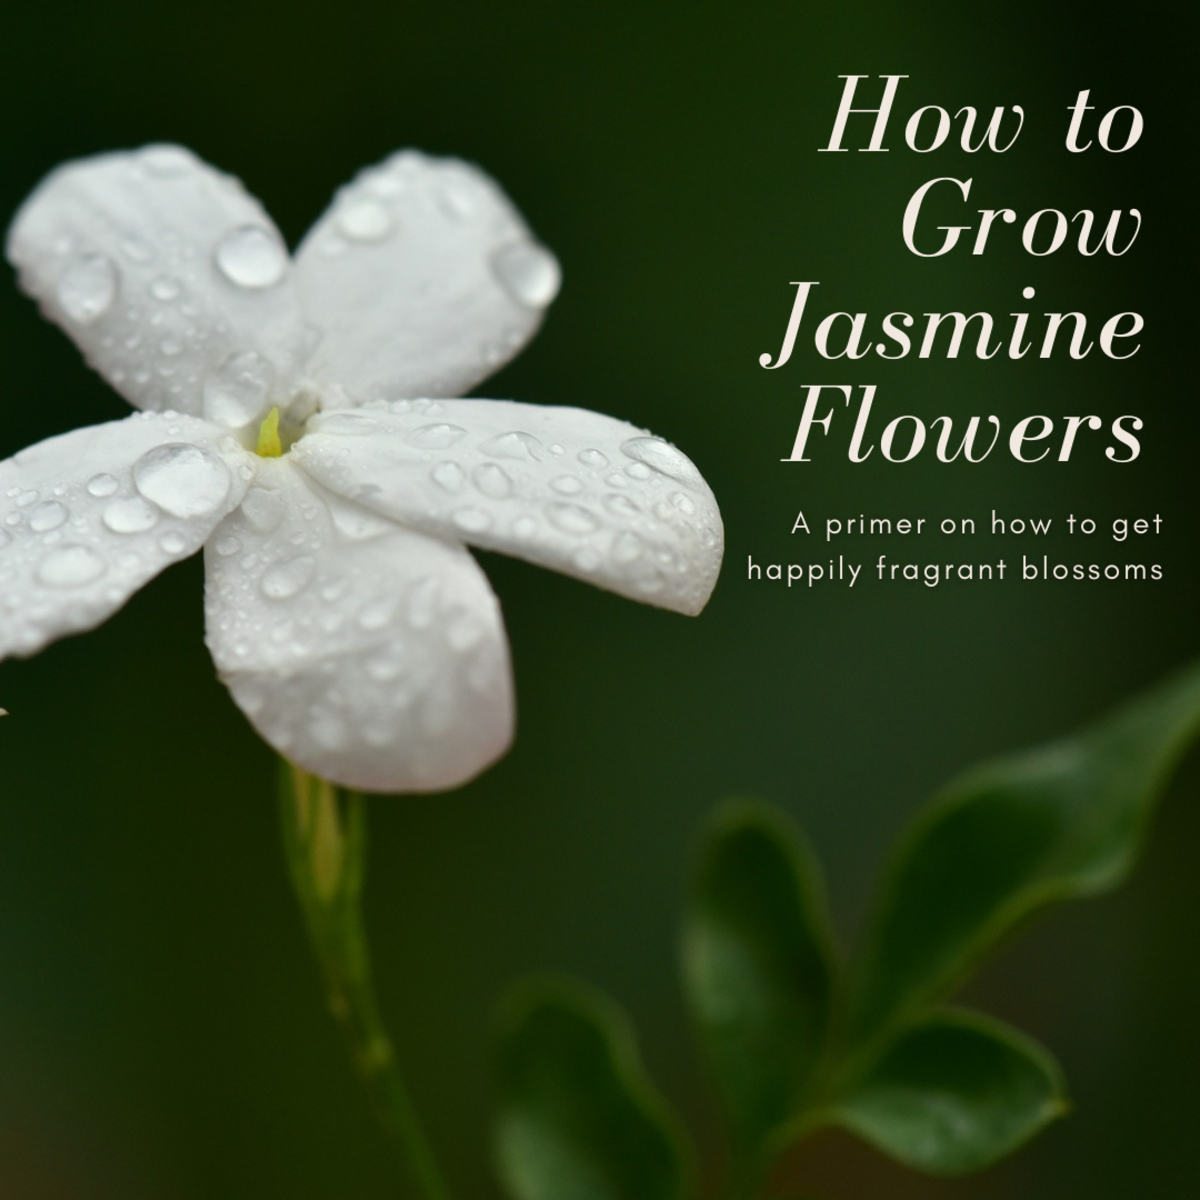 This article will break down everything you need to know to get delightfully fragrant blossoms from your jasmine plant.